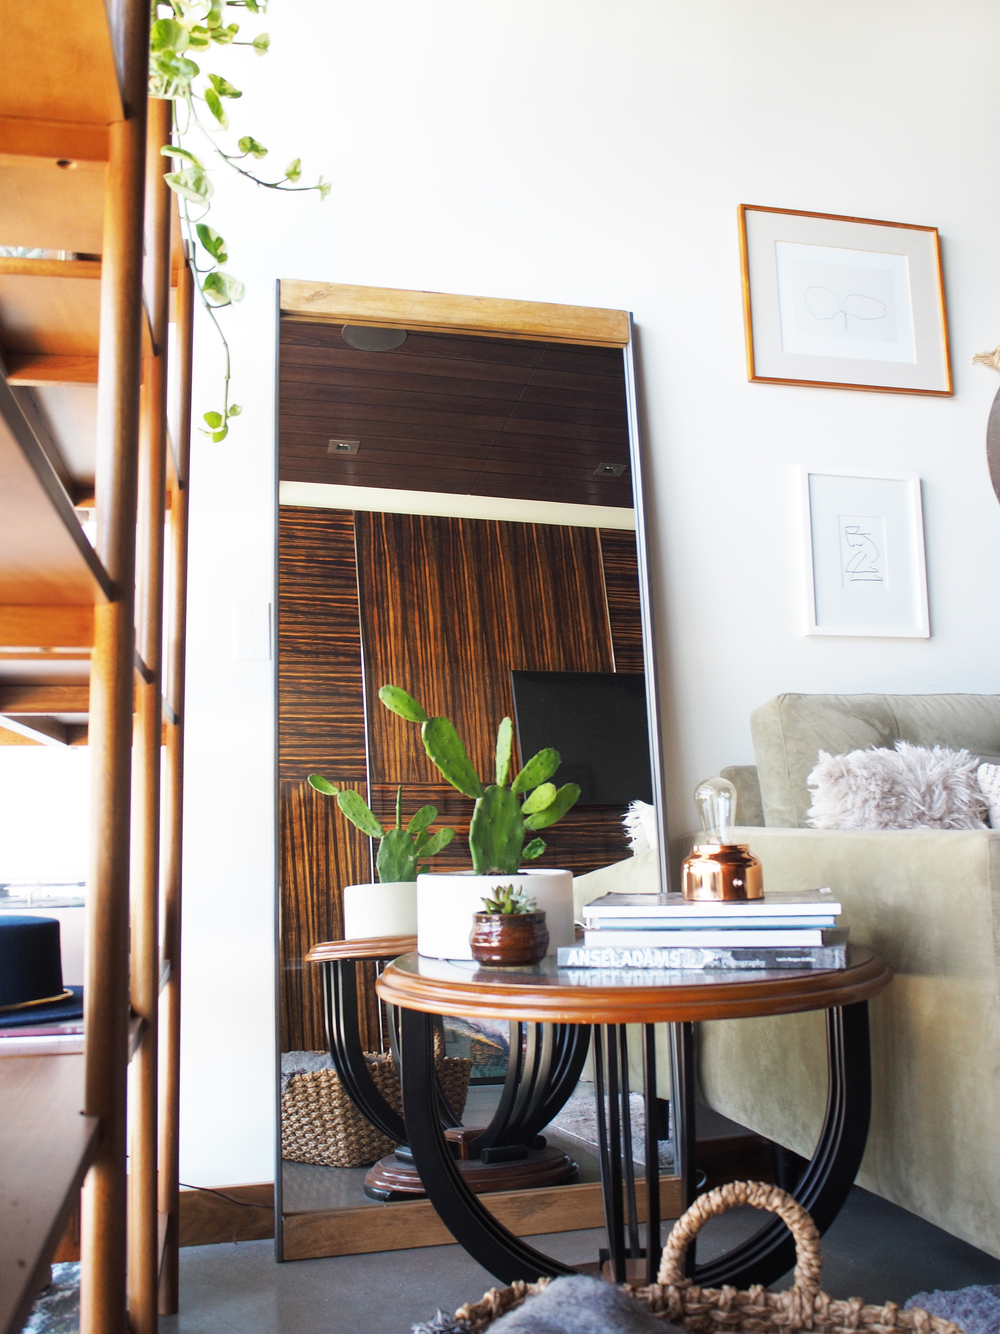 Getting Home-y With Homee Designing the Perfect Space for Work and Living x Taylr Anne Collaboration